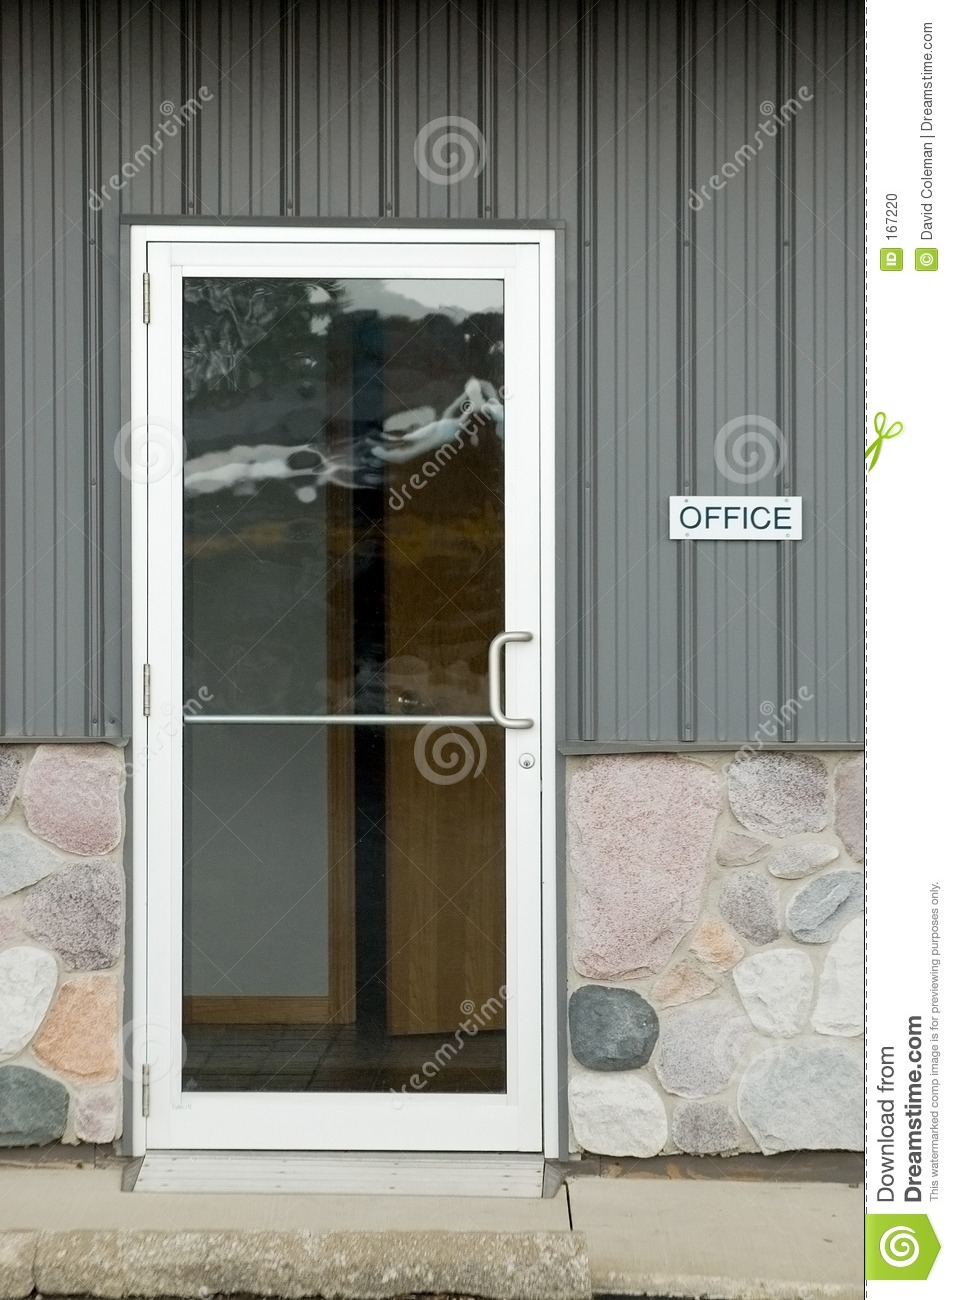 Office Door Stock Photo Image Of Office Handle Building